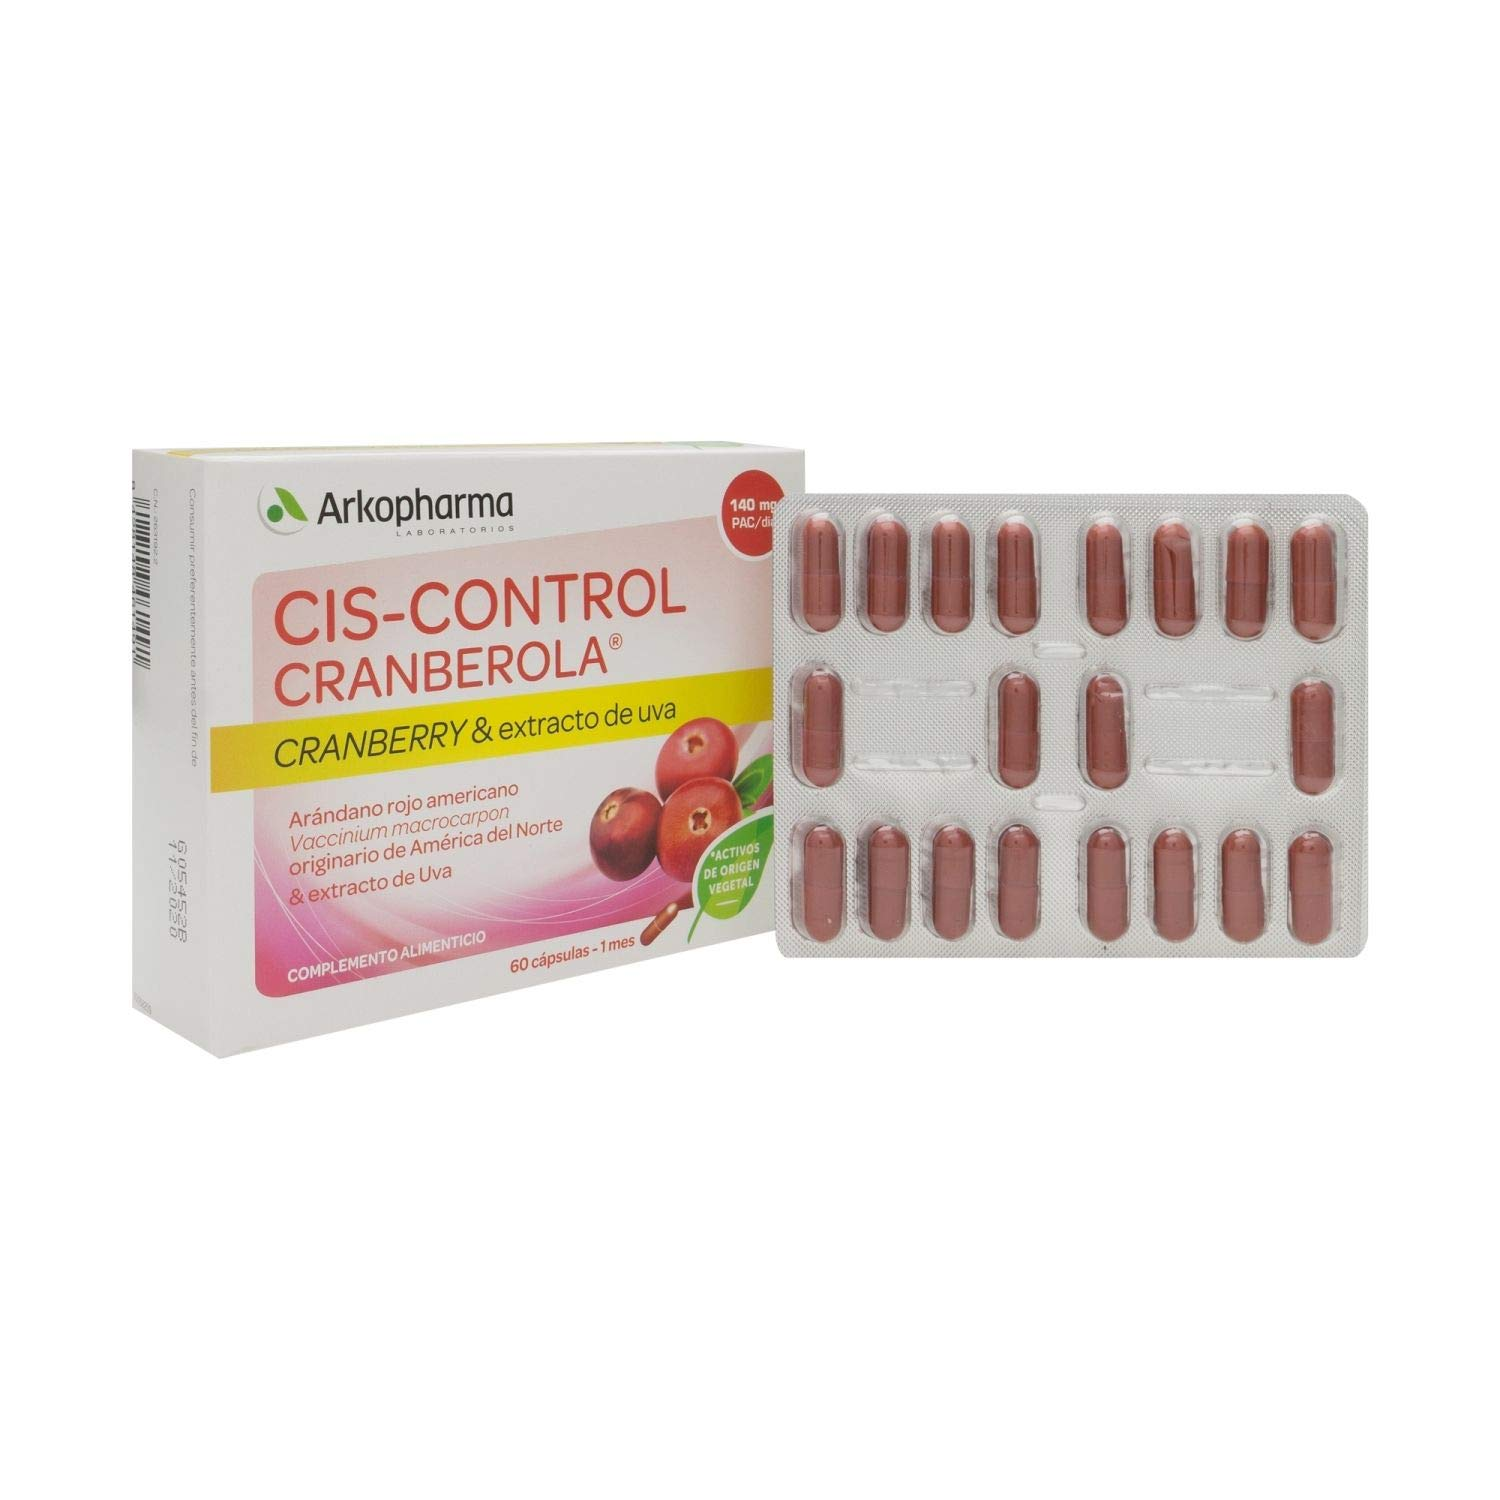 Arkopharma Cranberola Cis-Control 60 Capsules - Medicinal Plants - Promote Kidney Function and Contribute to Urinary Well-Being - Spain